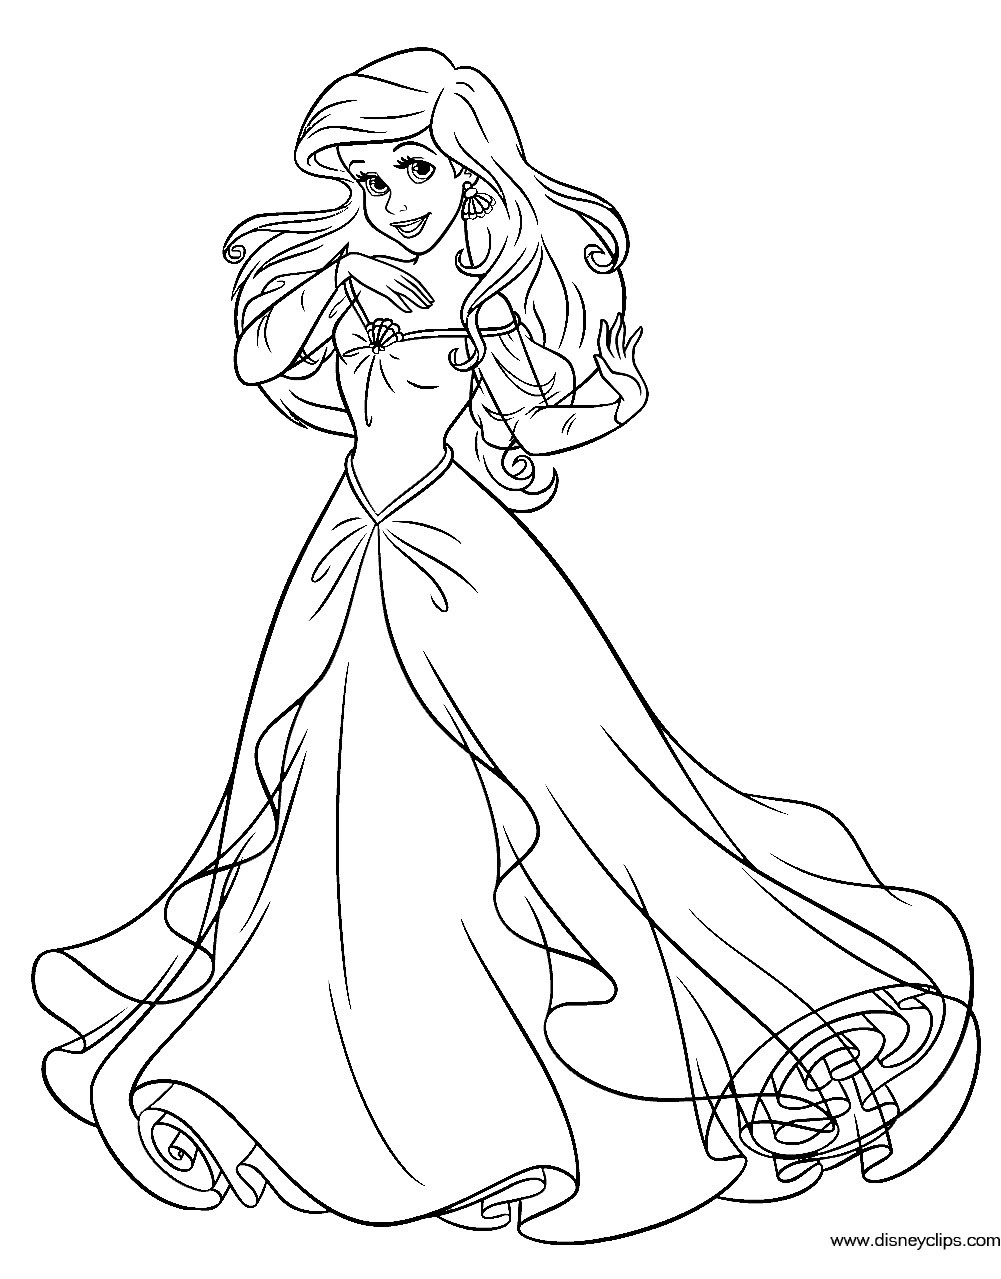 25+ Excellent Photo of Ariel Coloring Page ...